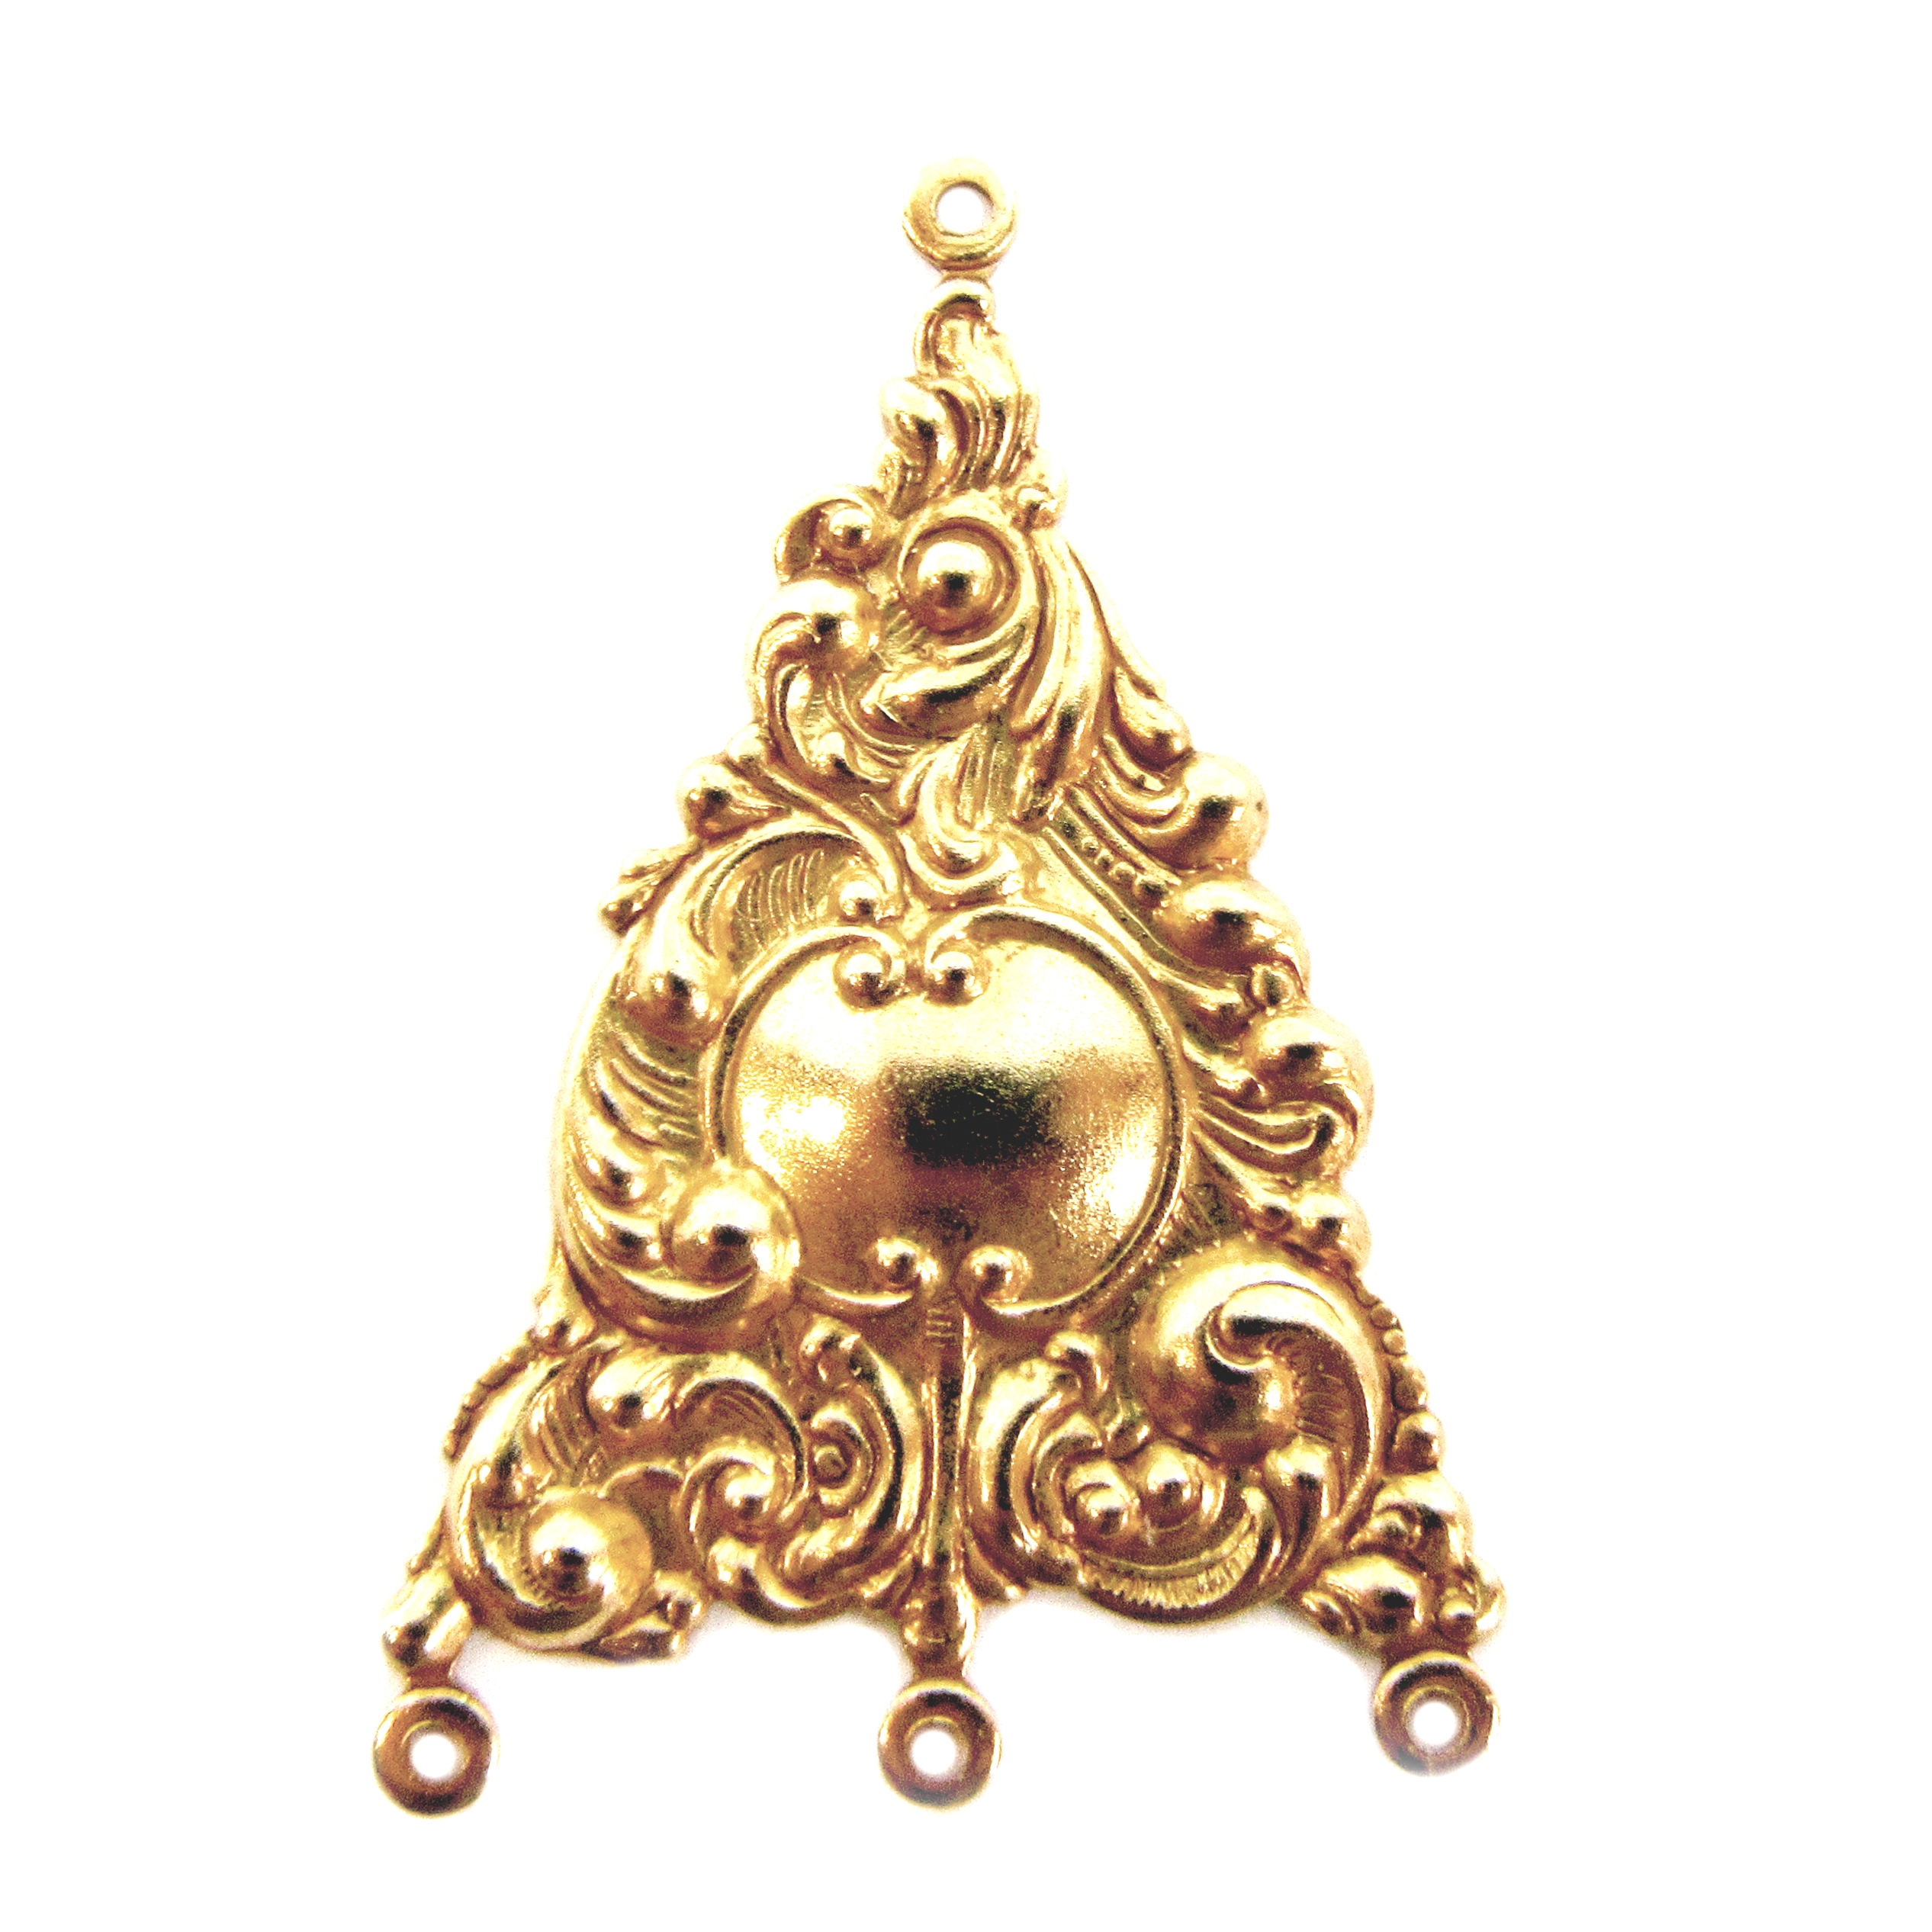 victorian gypsy ear drop, classic gold plated, gold, brass, brass stamping, ear drops, pendant, earrings, floral, victorian, gypsy, us made, nickel free, 31x25mm, jewelry supplies, vintage supplies, jewelry findings, leafy motif, jewelry making, 05034